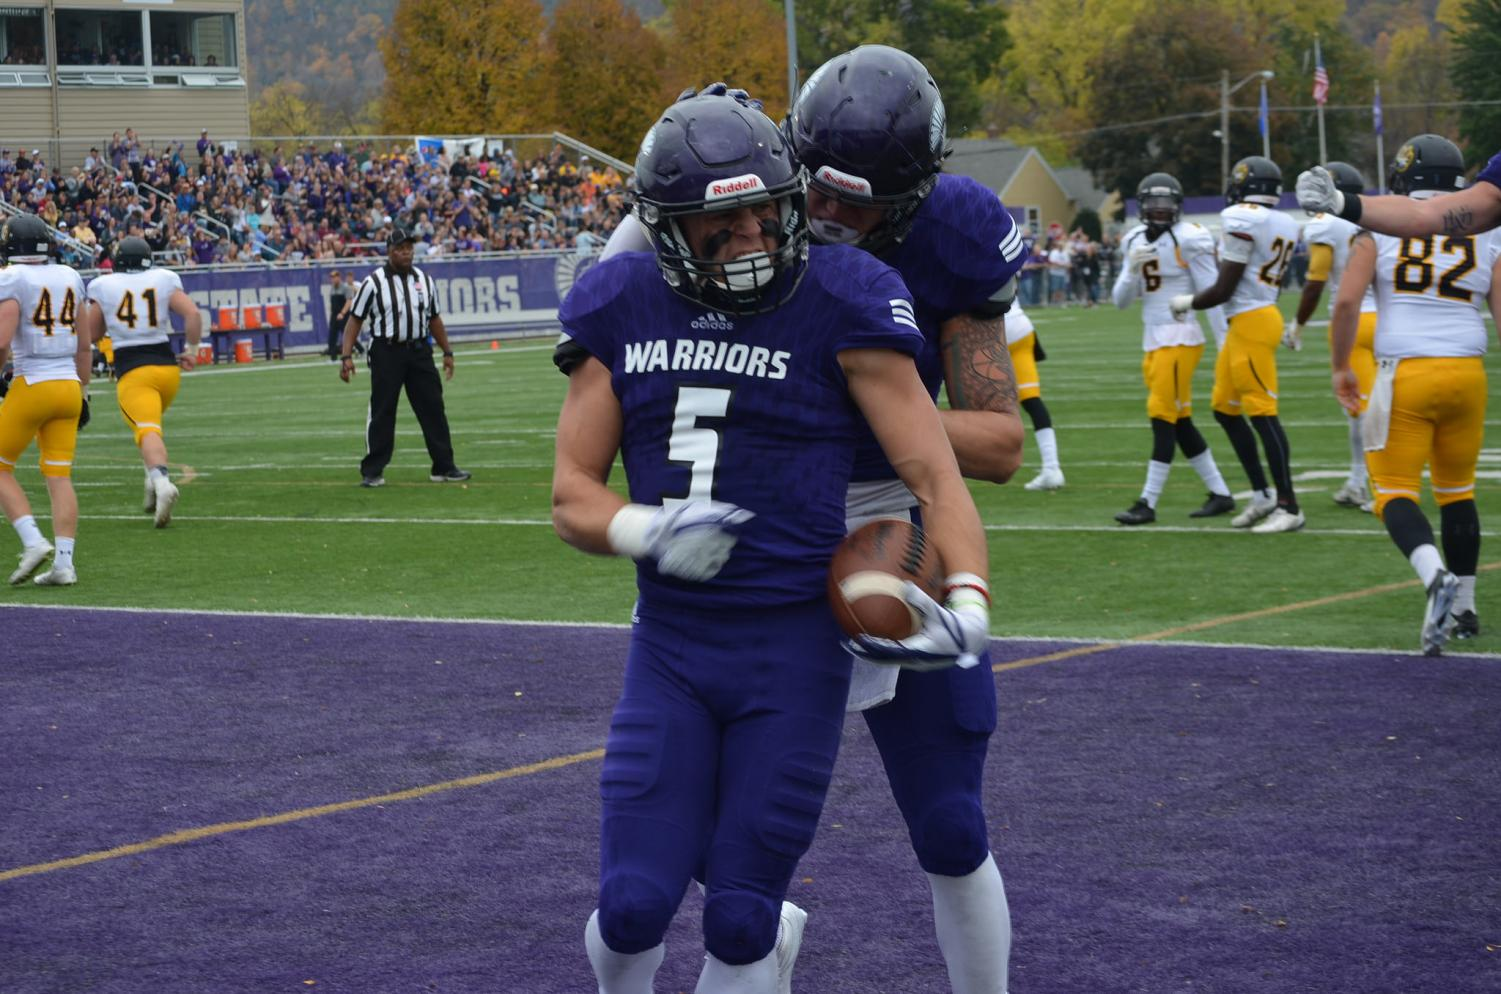 Sophomore Jake Ballio, a wide receiver for Winona State celebrates a touchdown with a teammate at Saturday, Oct. 21's Homecoming game against Wayne State University in Altra Credit Federal Union Stadium. The Warriors won 42-19 this weekend, continuing their winning streak for the season.